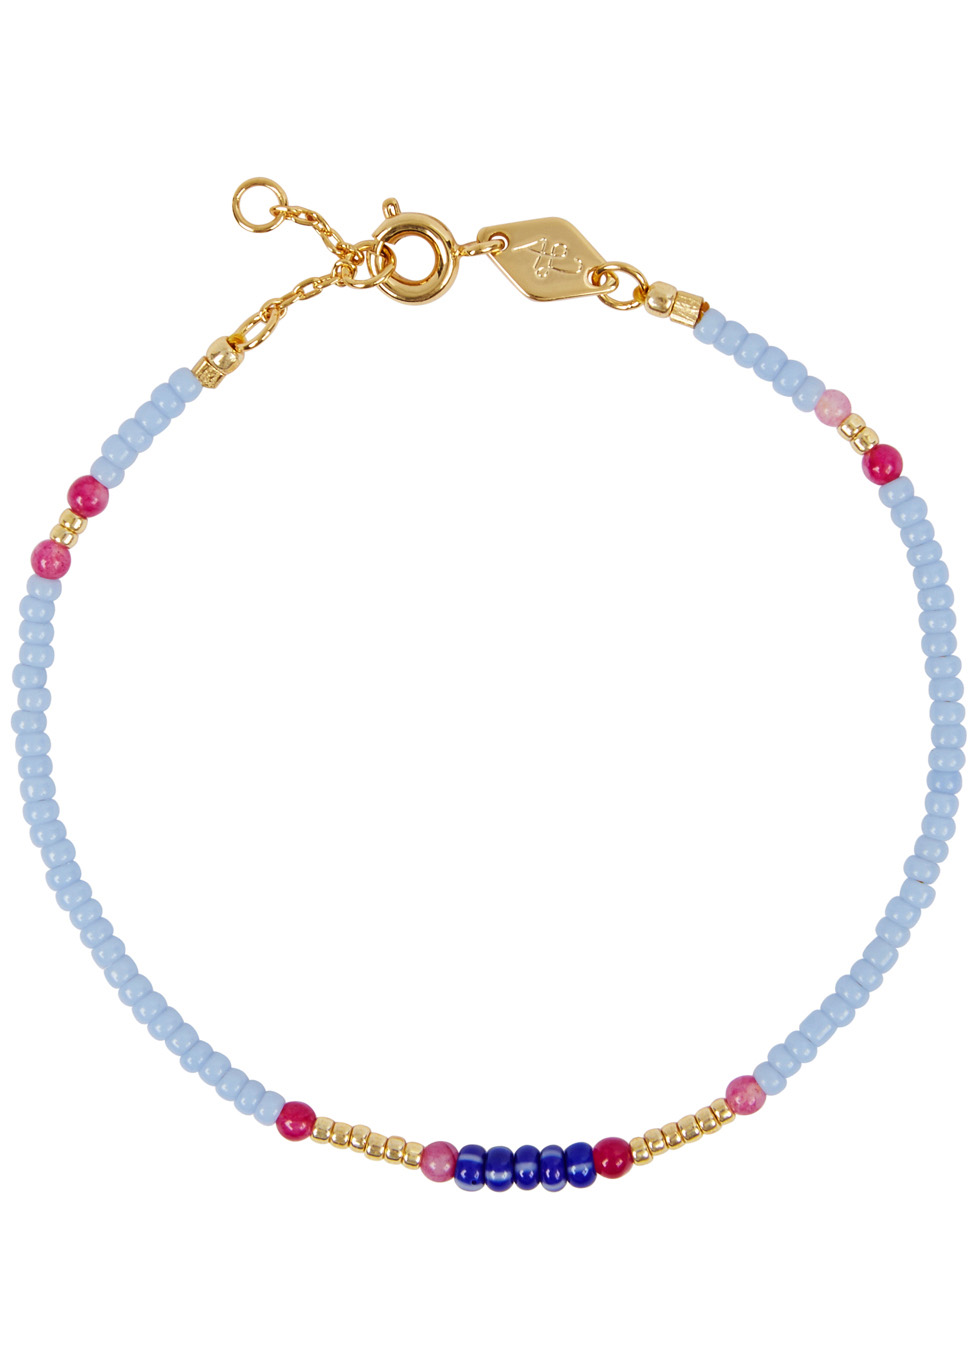 ANNI LU PEPPY 18CT GOLD-PLATED BEADED BRACELET